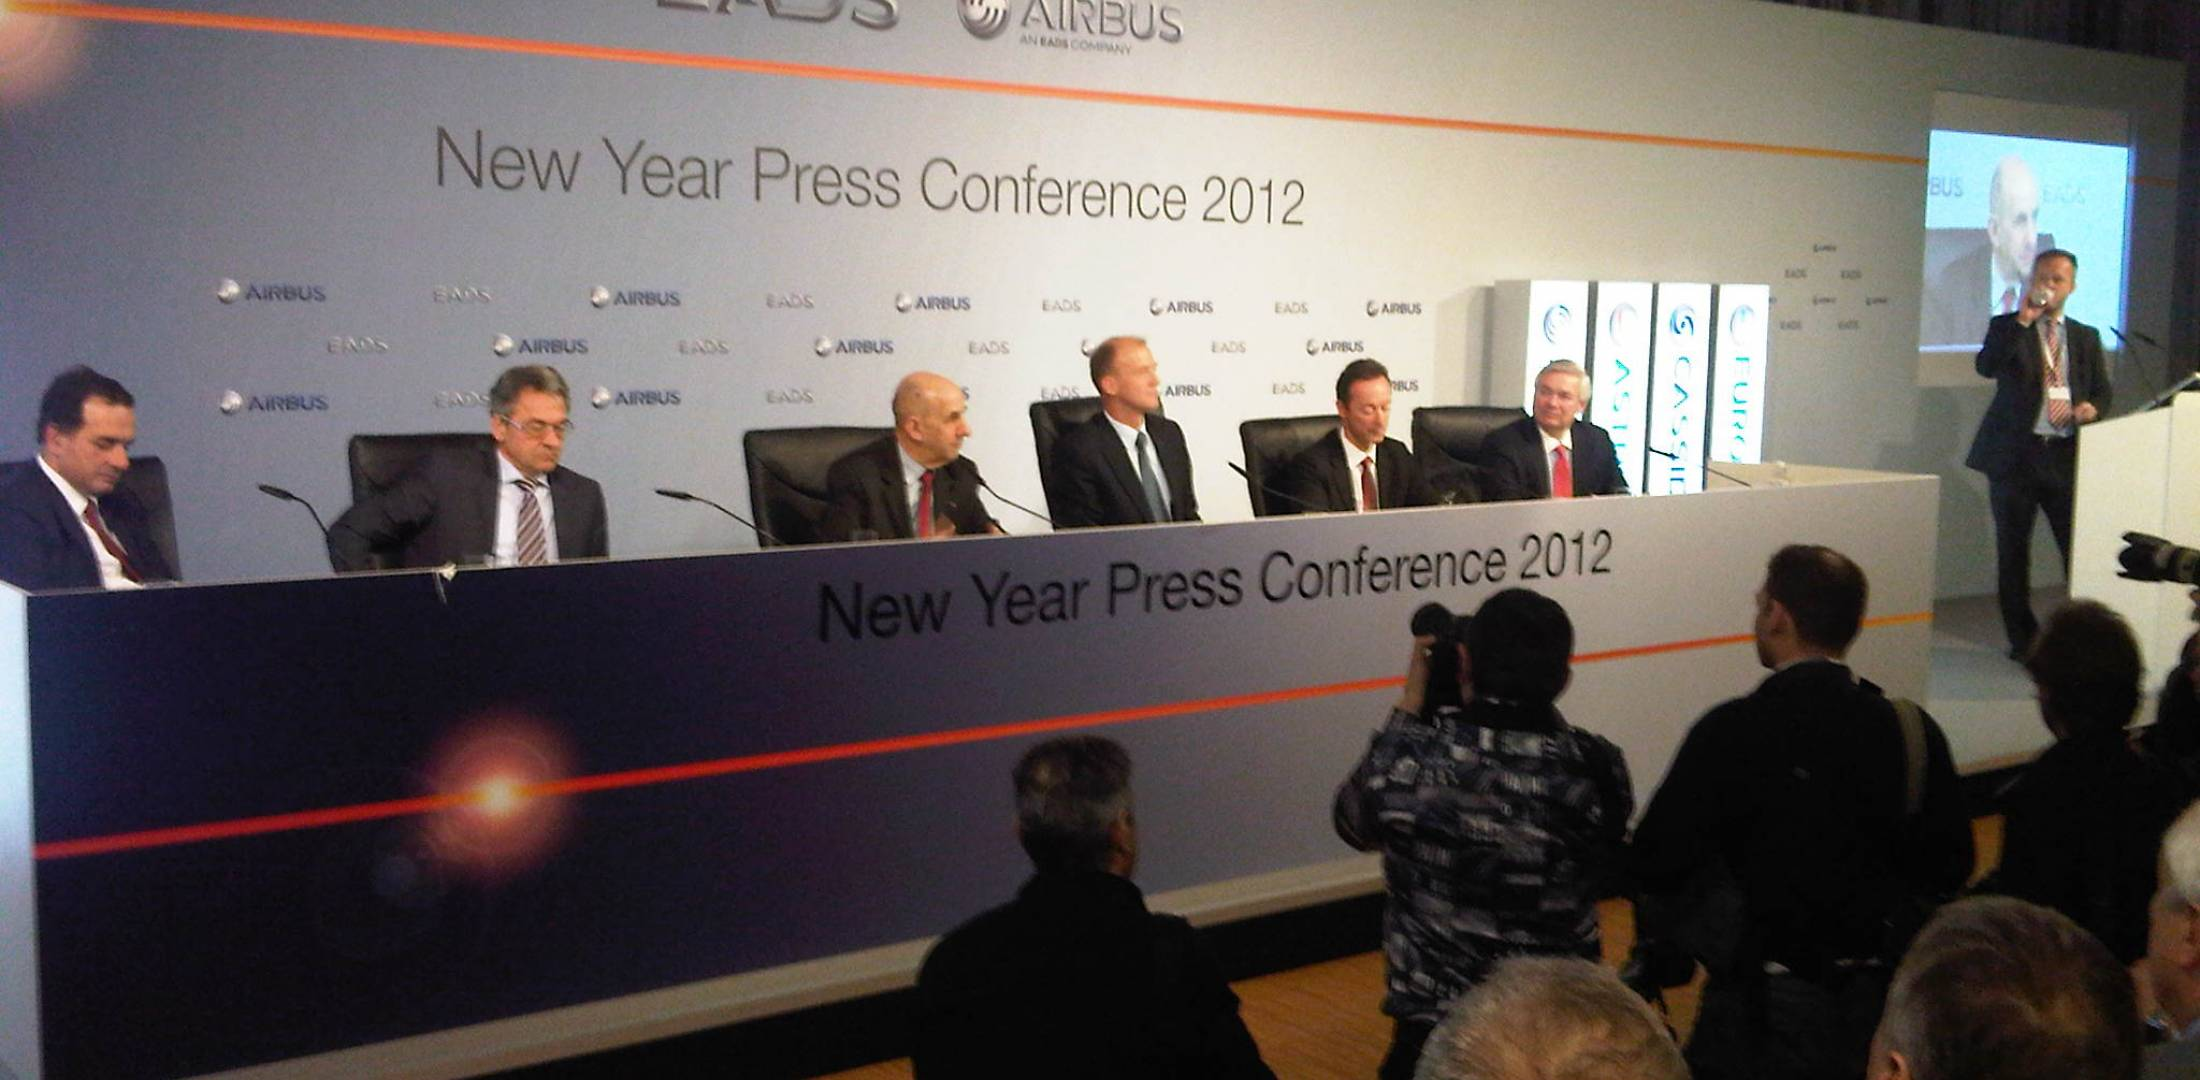 Airbus faces challenges in 2012 bolstered by record business volumes in 2011